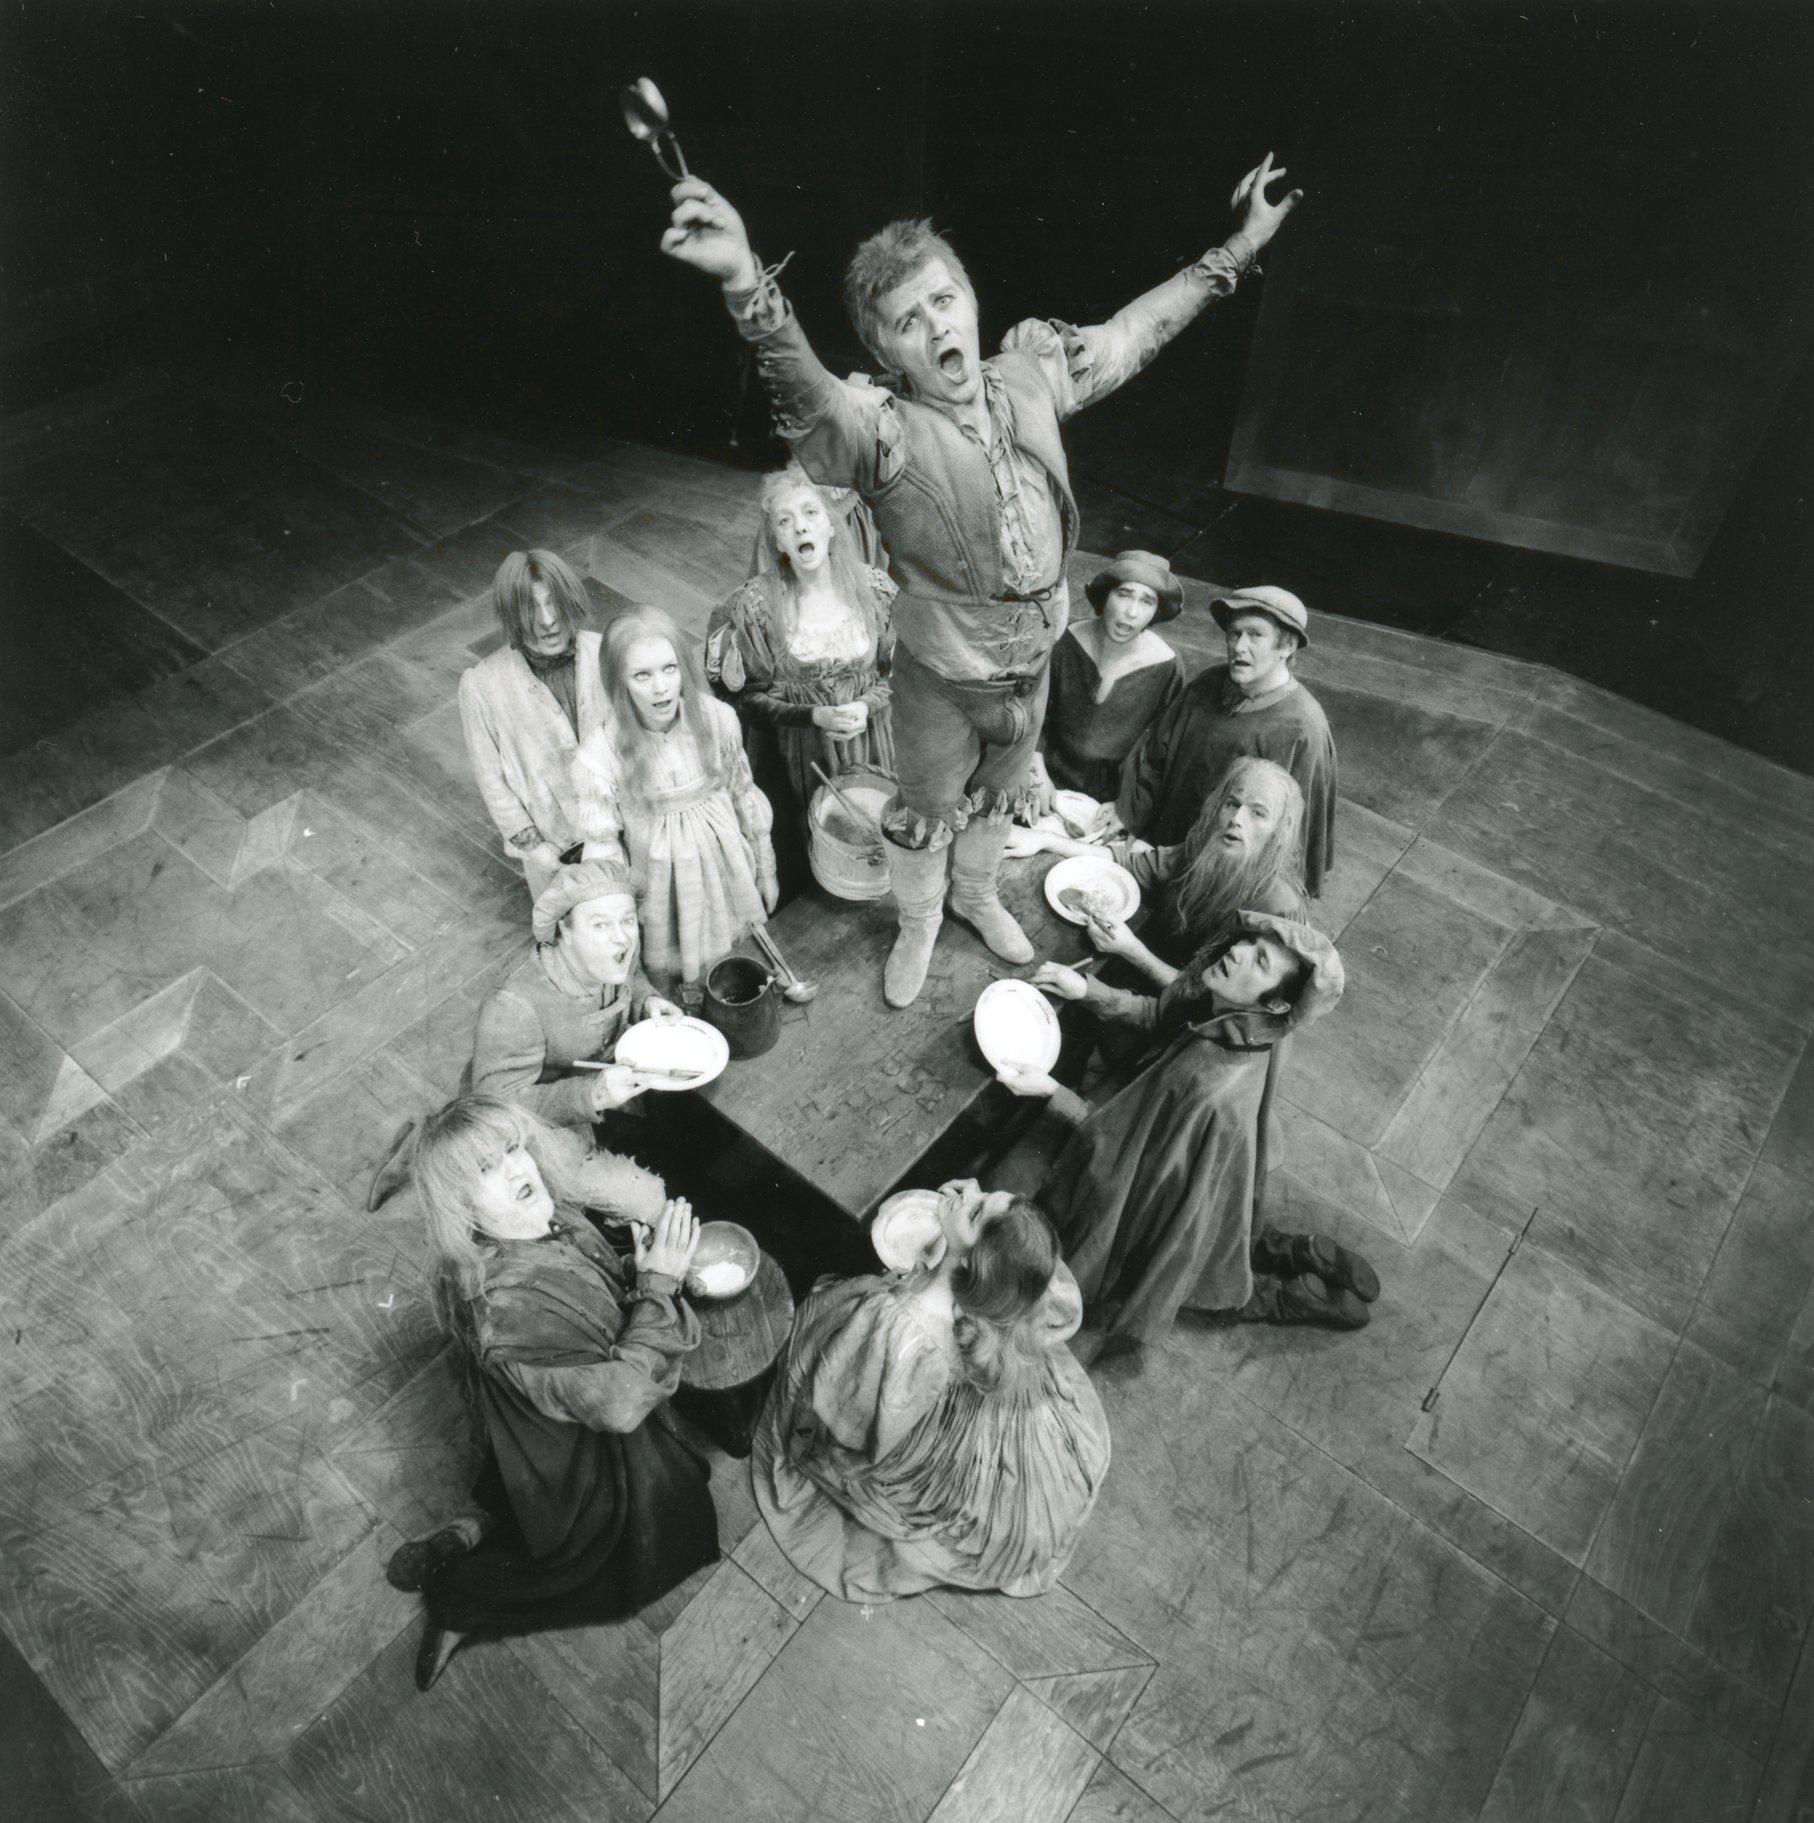 A man jumps onto a table surrounded by people.